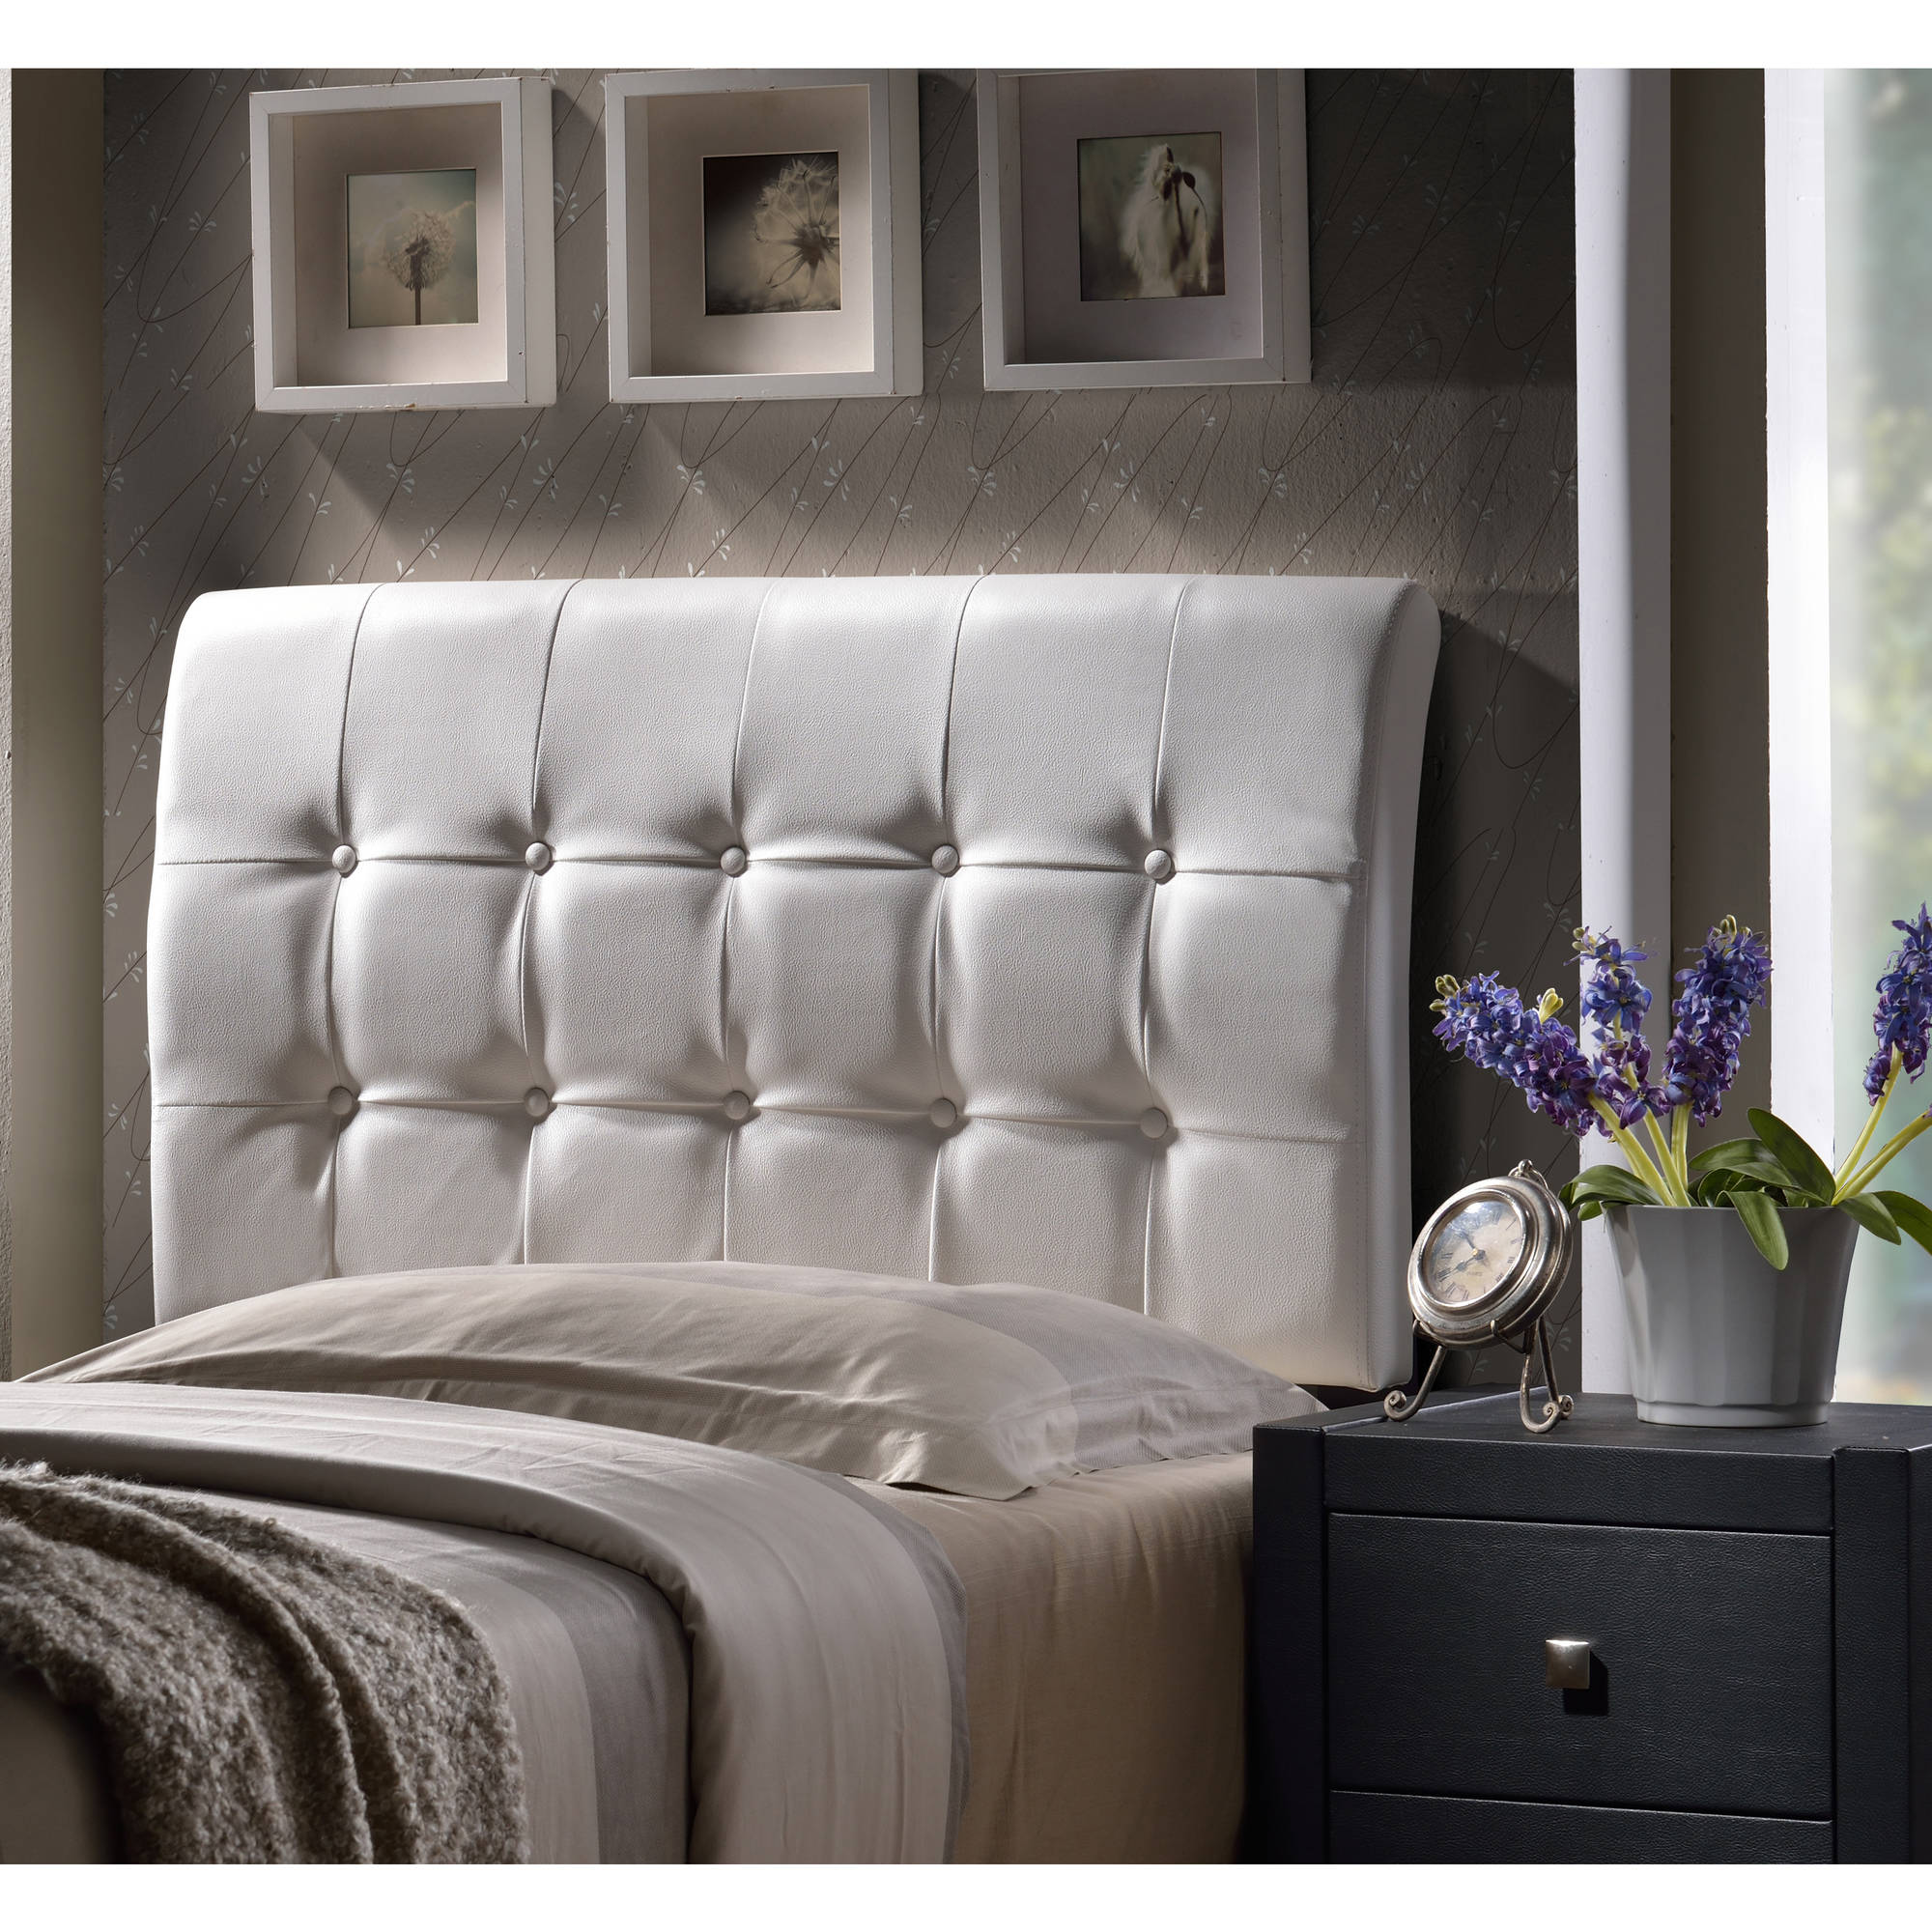 Hillsdale Furniture Lusso Full Headboard, White Faux Leather